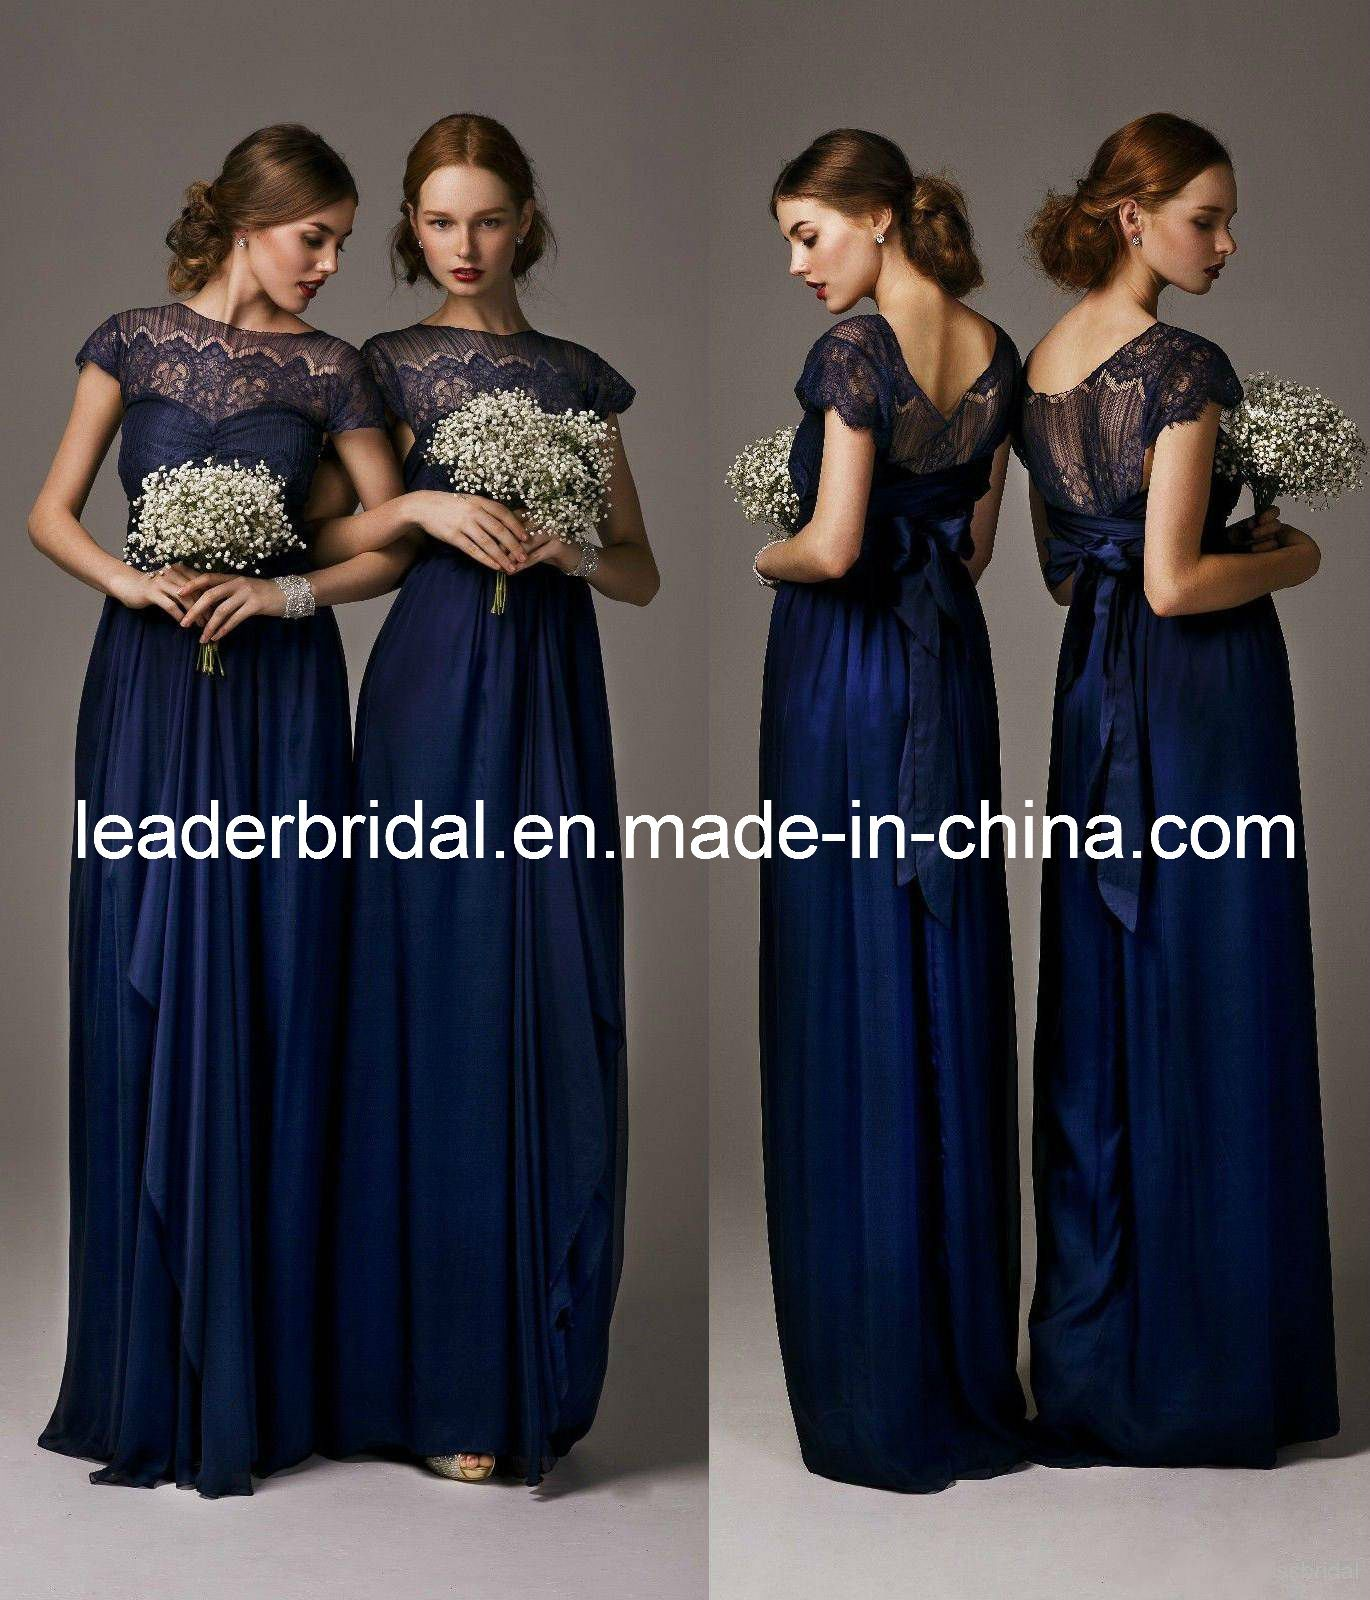 unique navy bridesmaid dresses - Google Search | Bridesmaid ...